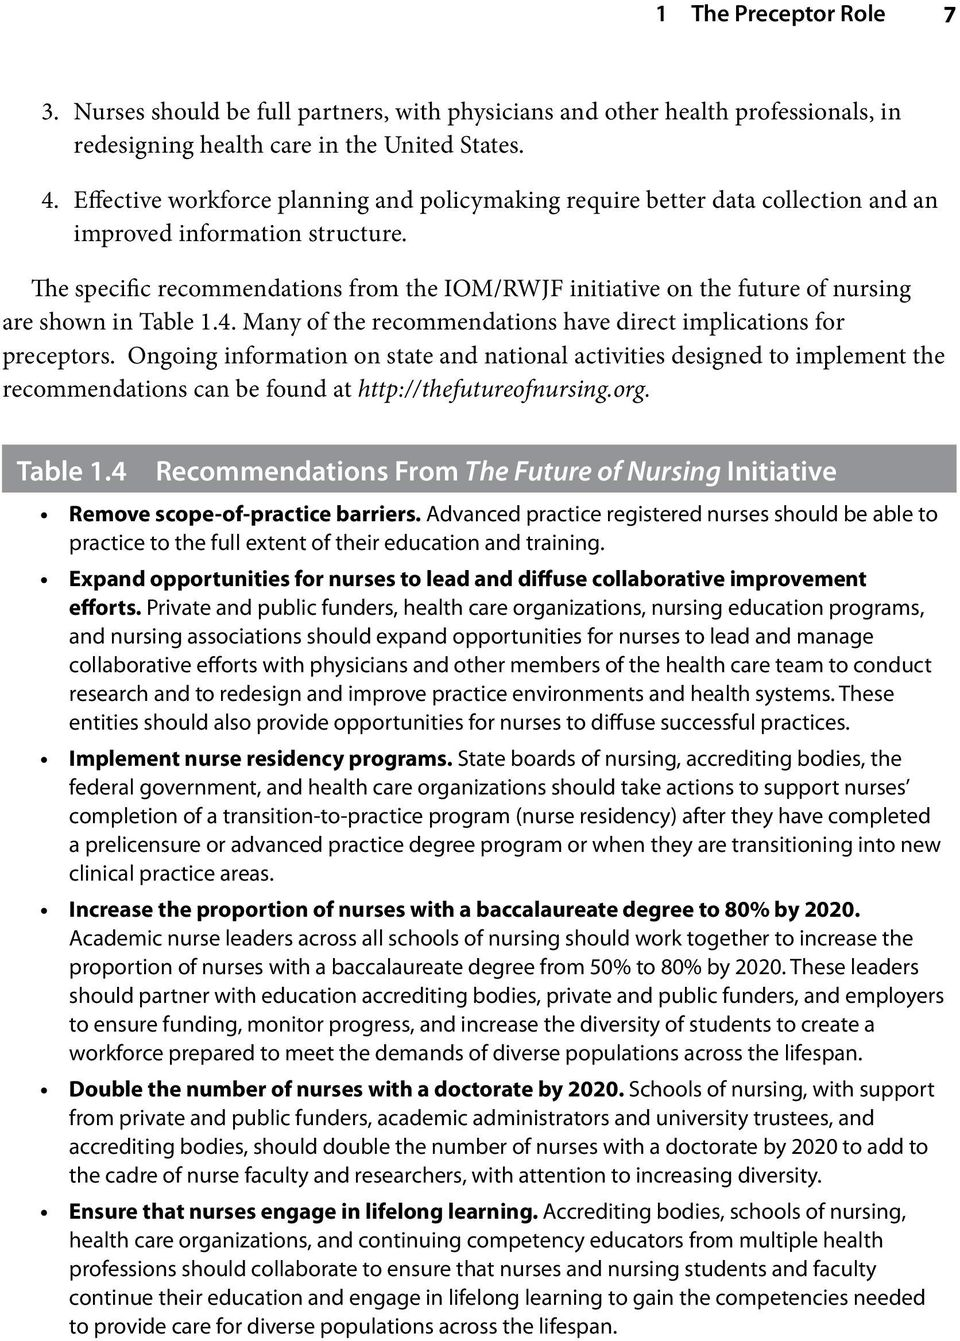 The specific recommendations from the IOM/RWJF initiative on the future of nursing are shown in Table 1.4. Many of the recommendations have direct implications for preceptors.